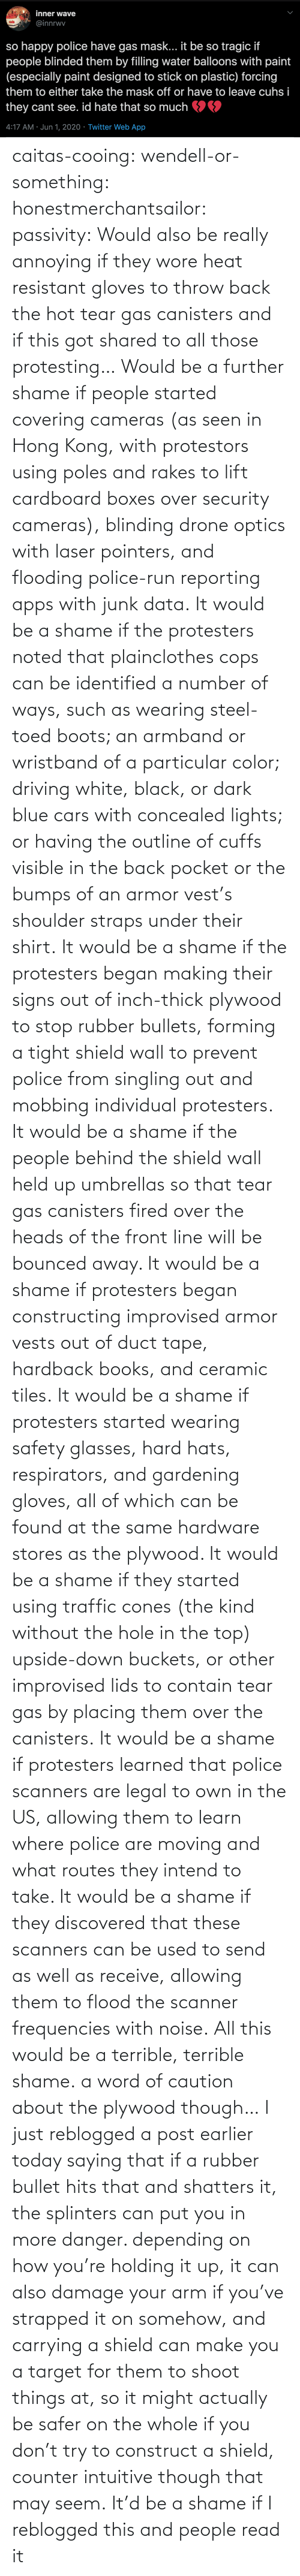 Wearing: caitas-cooing:  wendell-or-something: honestmerchantsailor:  passivity: Would also be really annoying if they wore heat resistant gloves to throw back the hot tear gas canisters and if this got shared to all those protesting… Would be a further shame if people started covering cameras (as seen in Hong Kong, with protestors using poles and rakes to lift cardboard boxes over security cameras), blinding drone optics with laser pointers, and flooding police-run reporting apps with junk data. It would be a shame if the protesters noted that plainclothes cops can be identified a number of ways, such as wearing steel-toed boots; an armband or wristband of a particular color; driving white, black, or dark blue cars with concealed lights; or having the outline of cuffs visible in the back pocket or the bumps of an armor vest's shoulder straps under their shirt. It would be a shame if the protesters began making their signs out of inch-thick plywood to stop rubber bullets, forming a tight shield wall to prevent police from singling out and mobbing individual protesters. It would be a shame if the people behind the shield wall held up umbrellas so that tear gas canisters fired over the heads of the front line will be bounced away. It would be a shame if protesters began constructing improvised armor vests out of duct tape, hardback books, and ceramic tiles. It would be a shame if protesters started wearing safety glasses, hard hats, respirators, and gardening gloves, all of which can be found at the same hardware stores as the plywood. It would be a shame if they started using traffic cones (the kind without the hole in the top) upside-down buckets, or other improvised lids to contain tear gas by placing them over the canisters. It would be a shame if protesters learned that police scanners are legal to own in the US, allowing them to learn where police are moving and what routes they intend to take. It would be a shame if they discovered that these scanners can be used to send as well as receive, allowing them to flood the scanner frequencies with noise. All this would be a terrible, terrible shame.    a word of caution about the plywood though… I just reblogged a post earlier today saying that if a rubber bullet hits that and shatters it, the splinters can put you in more danger. depending on how you're holding it up, it can also damage your arm if you've strapped it on somehow, and carrying a shield can make you a target for them to shoot things at, so it might actually be safer on the whole if you don't try to construct a shield, counter intuitive though that may seem.    It'd be a shame if I reblogged this and people read it